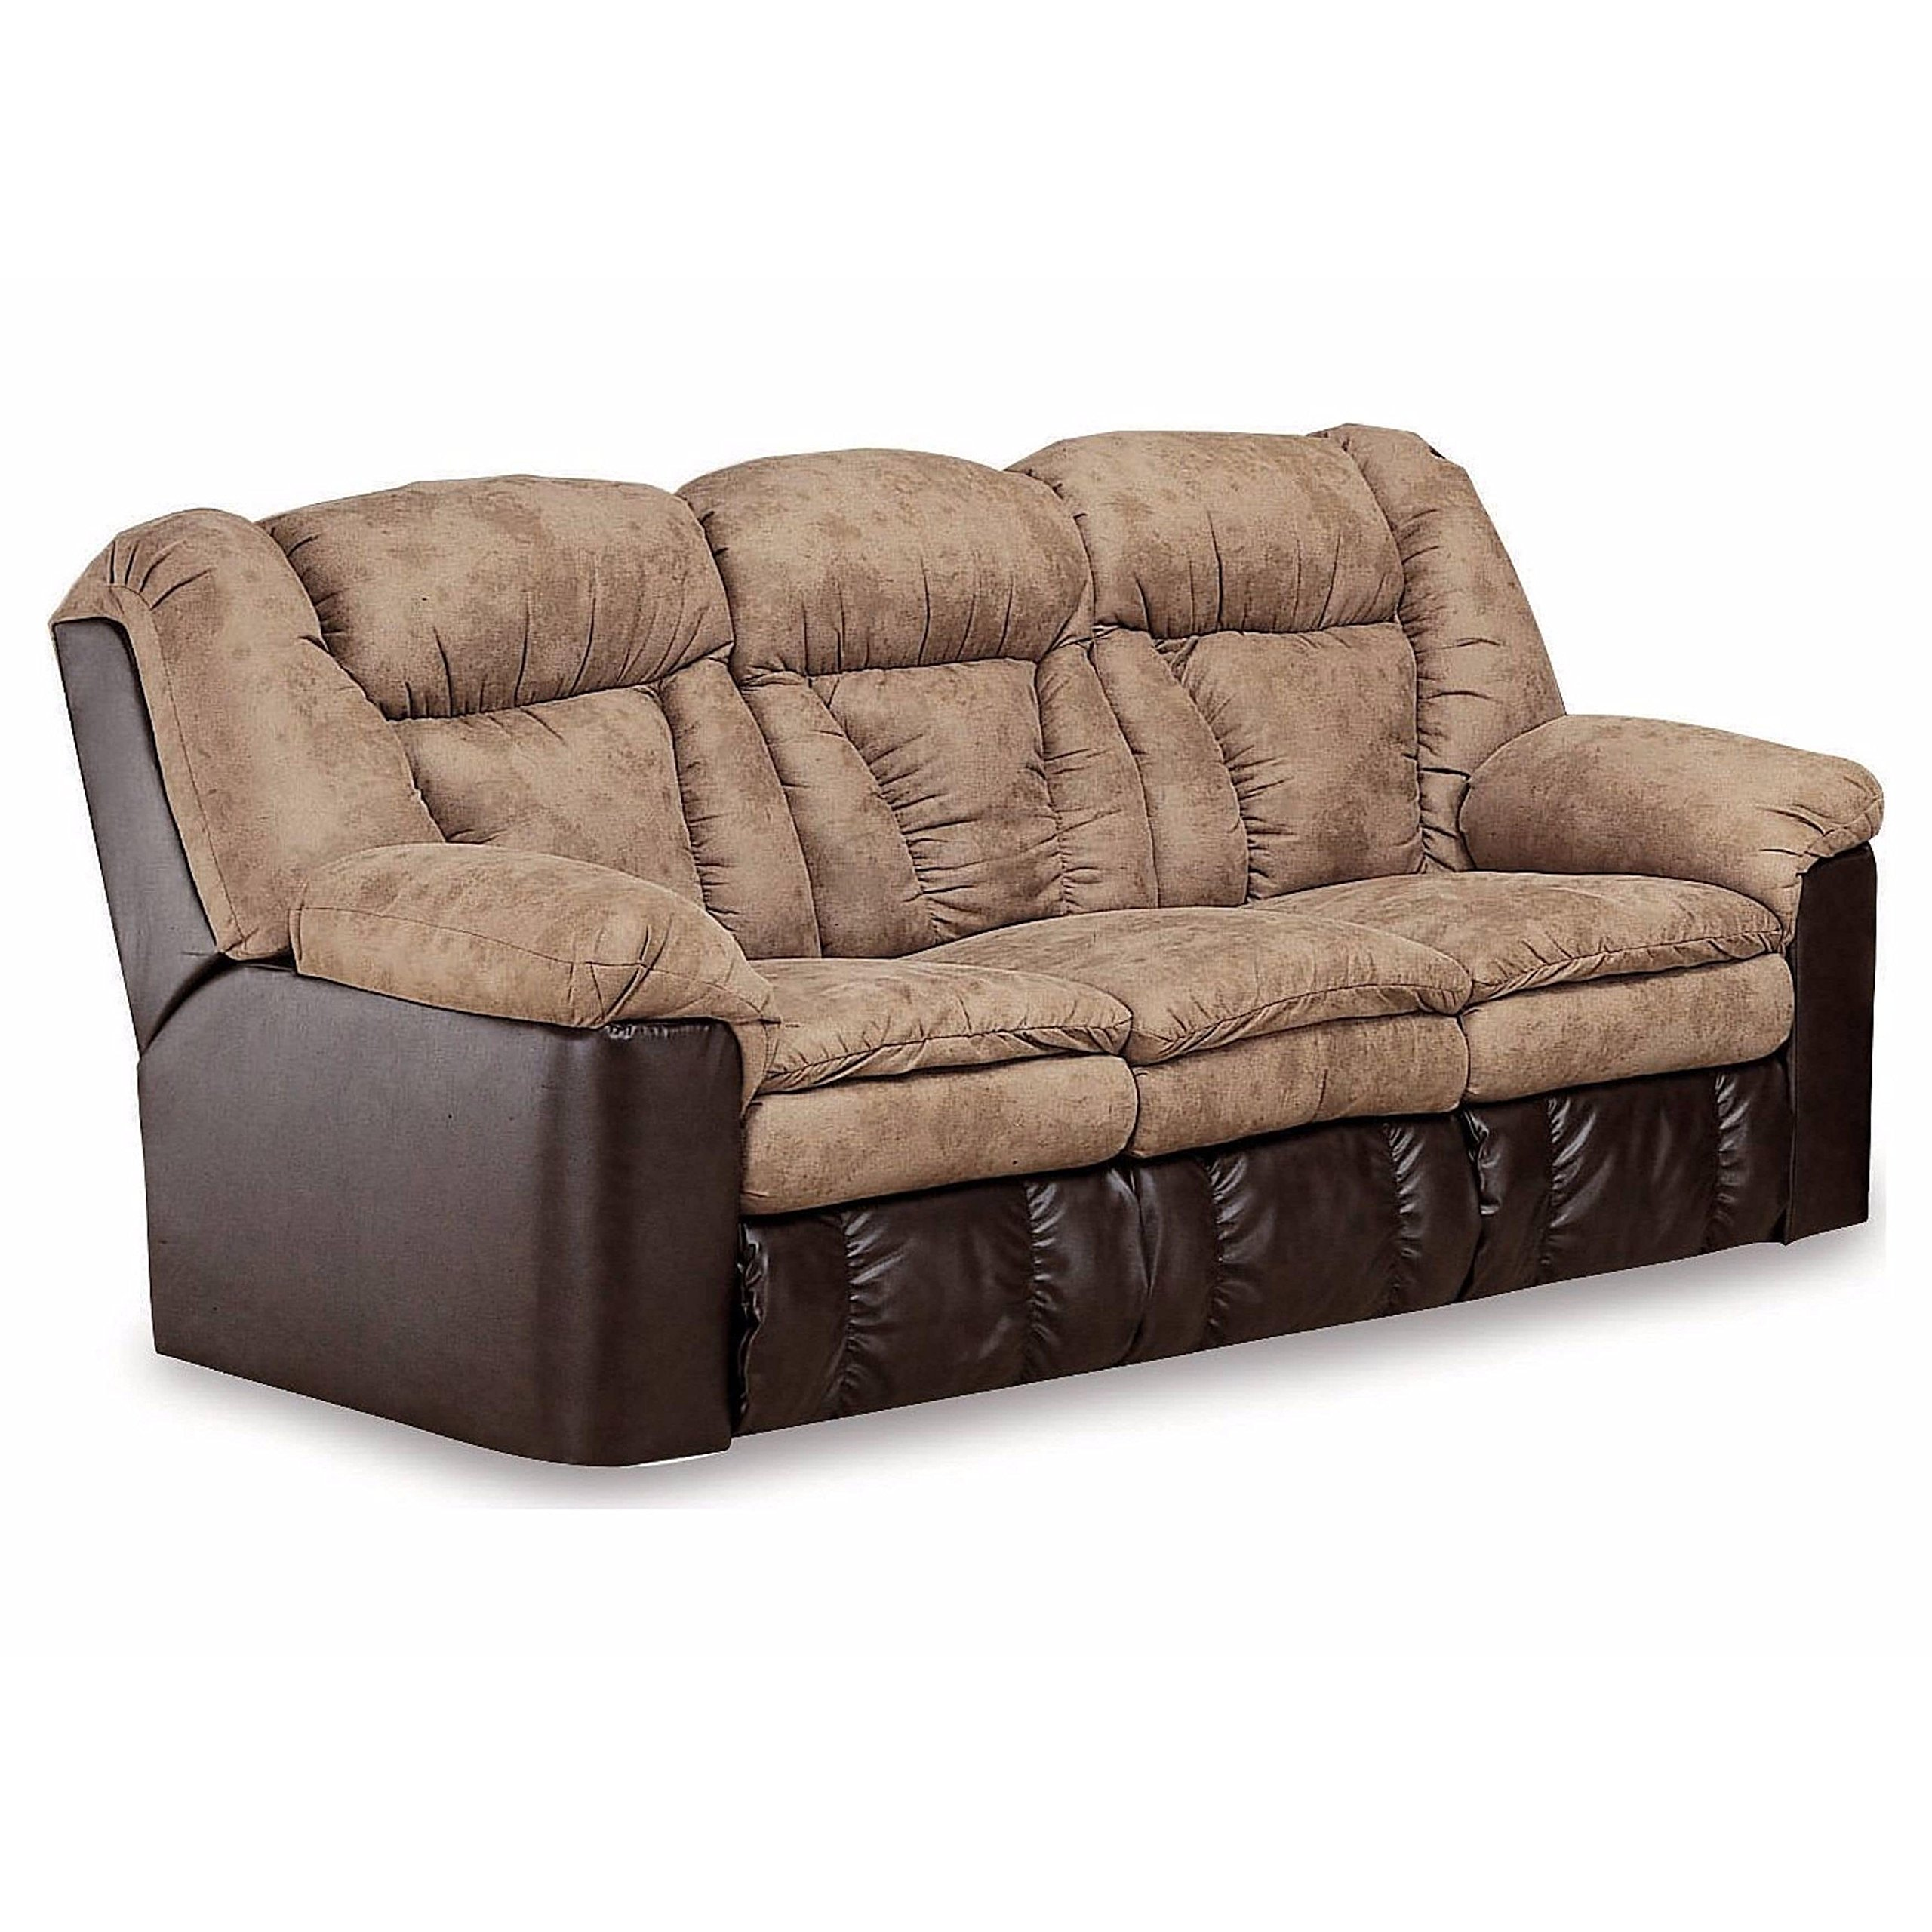 Lane Furniture Montgomery Double Reclining Sofa with Fold-down Table and 2-motor Massage